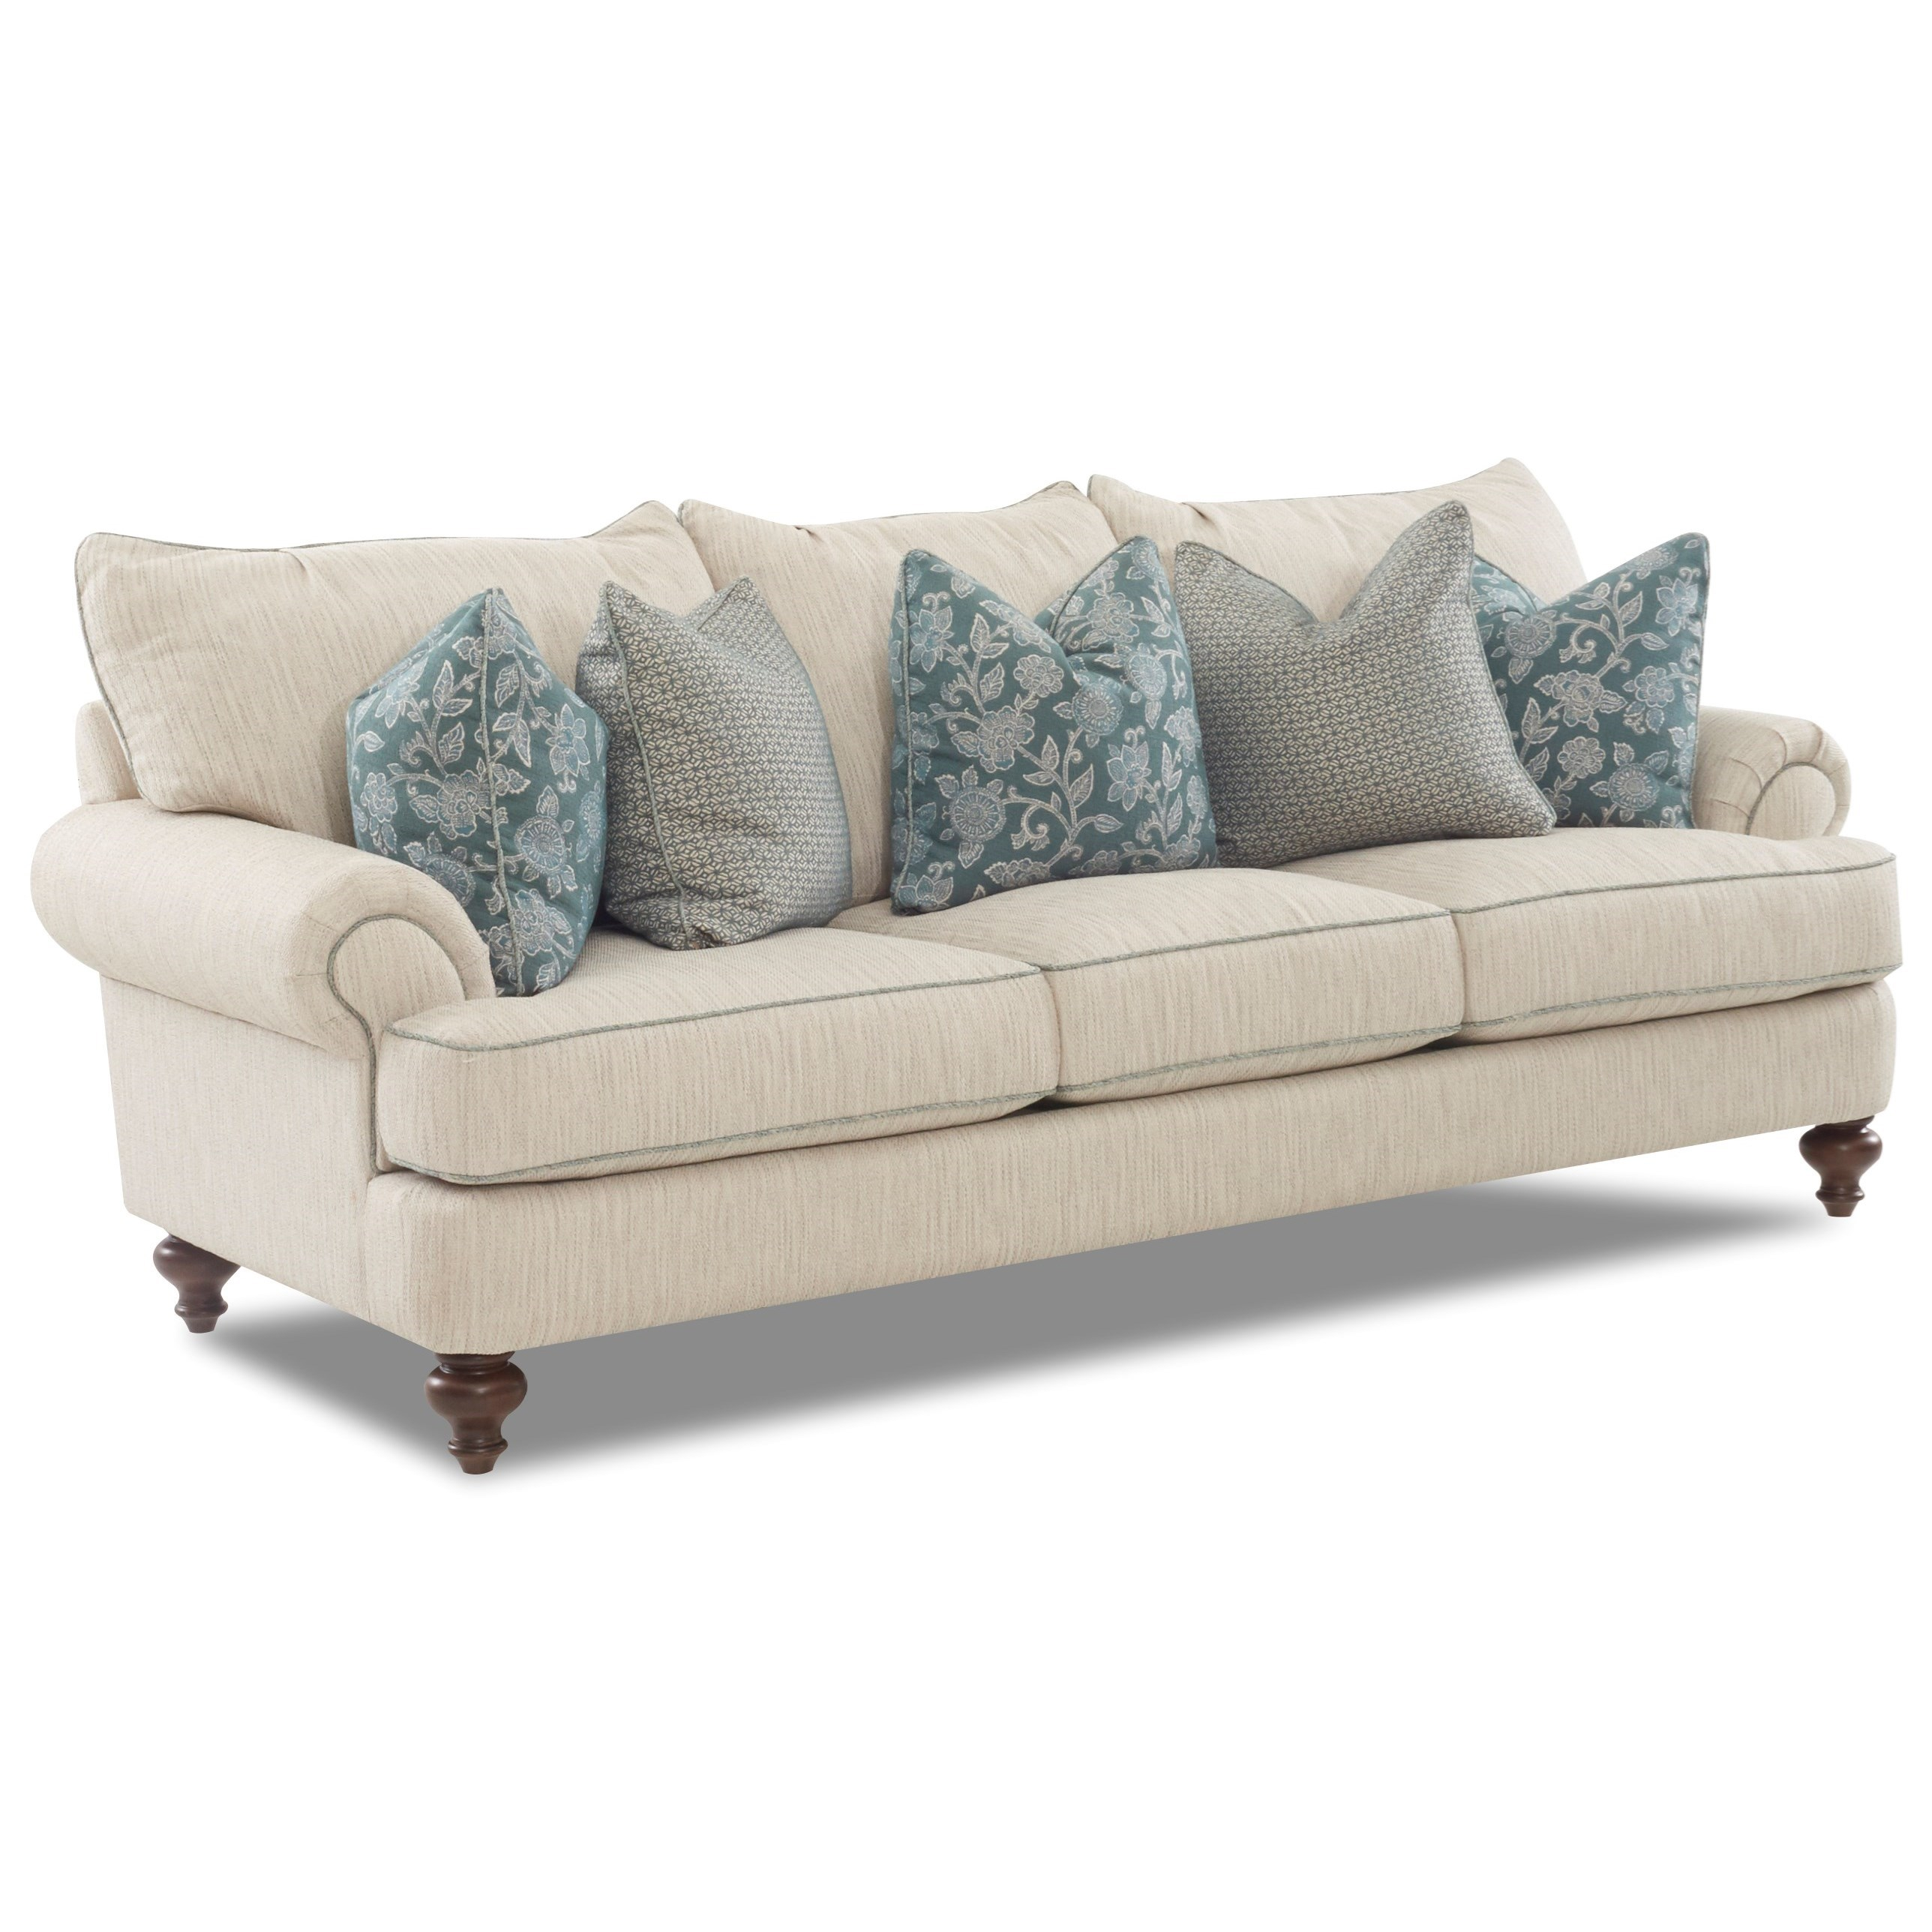 Attrayant Traditional Upholstered Sofa With T Shaped Down Cushions, Rolled Arms And  Turned Legs